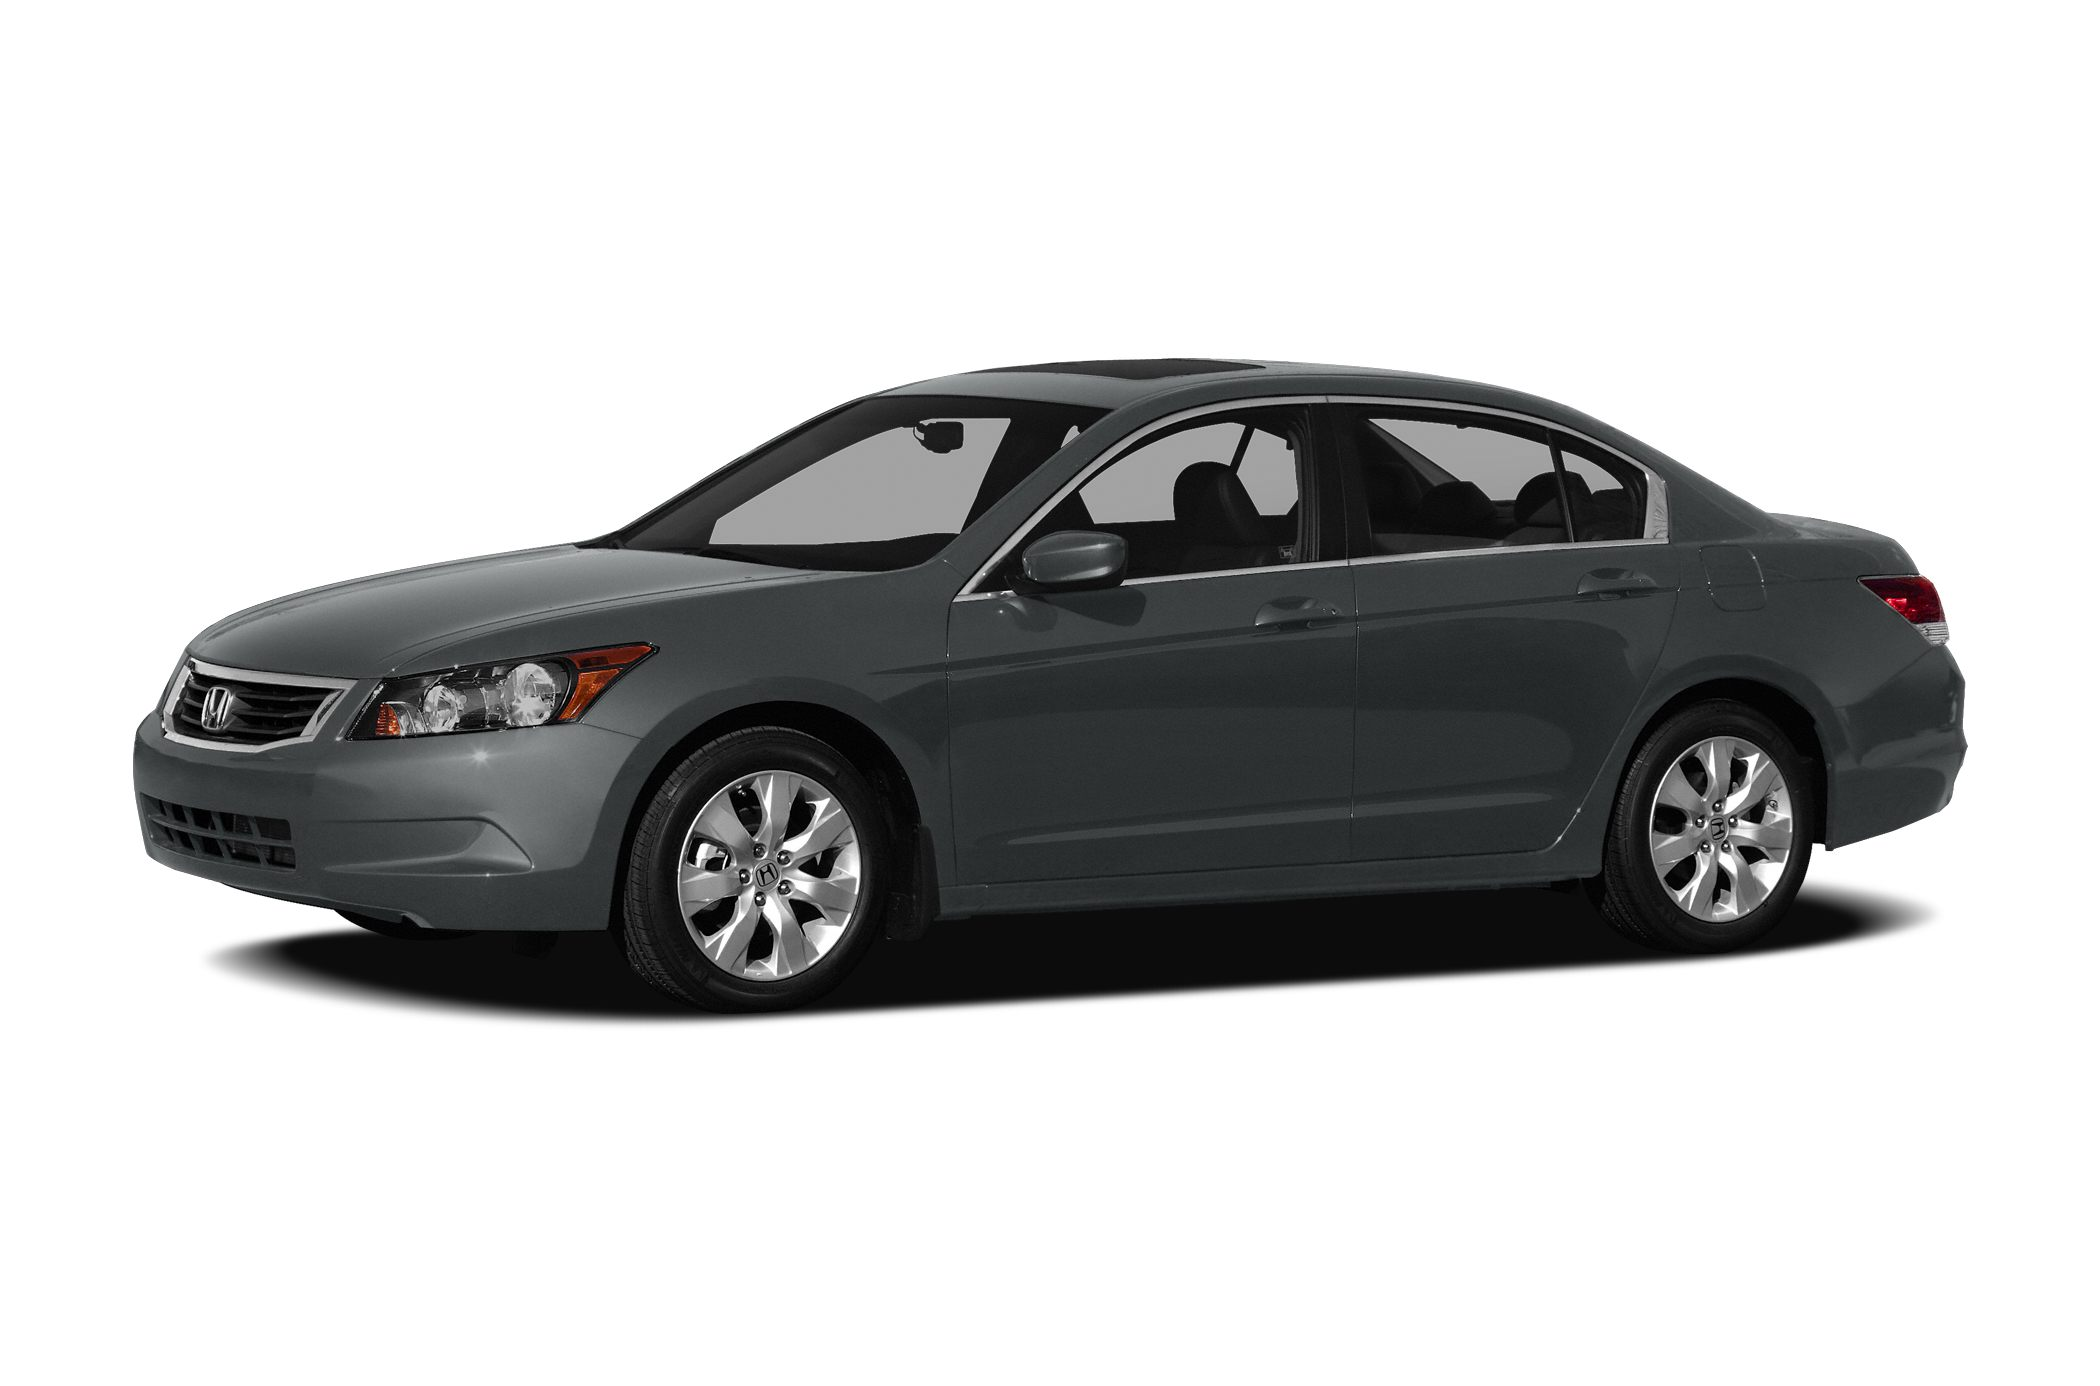 2009 Honda Accord EX-L Coupe for sale in Baltimore for $14,495 with 77,482 miles